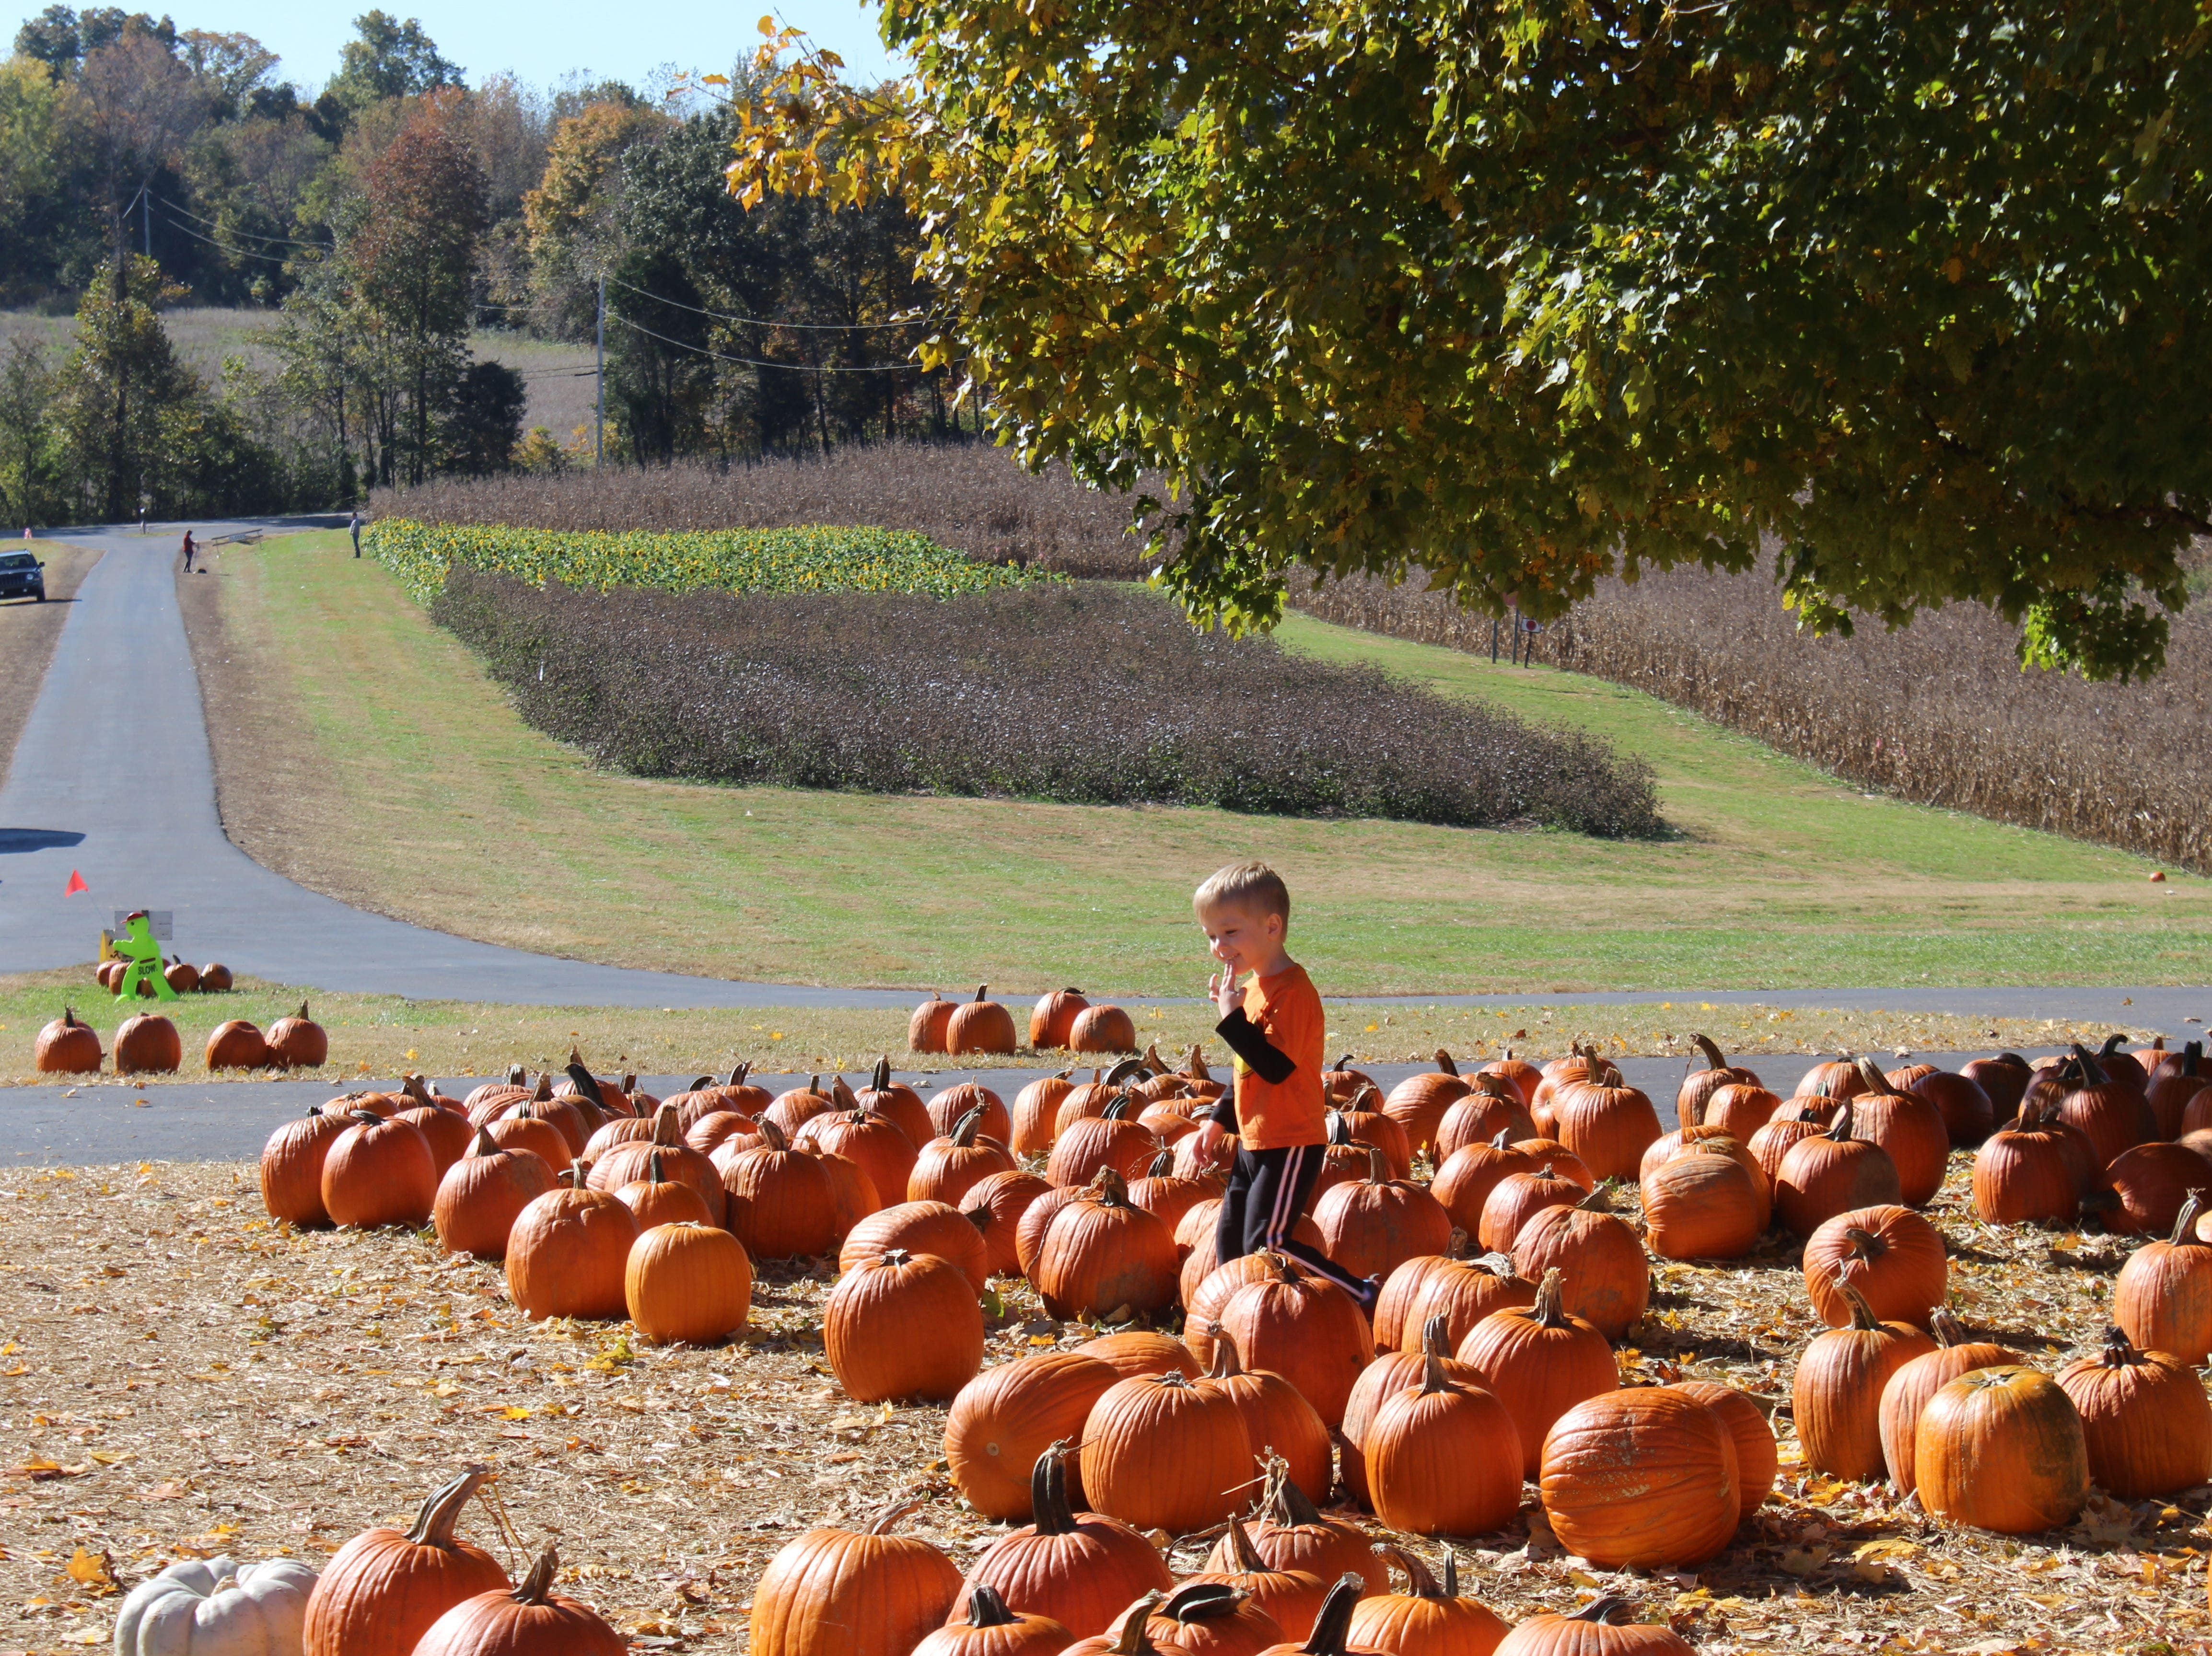 Picking out pumpkins is a favorite fall activity at Boyd's Pumpkin Patch, Oct. 29